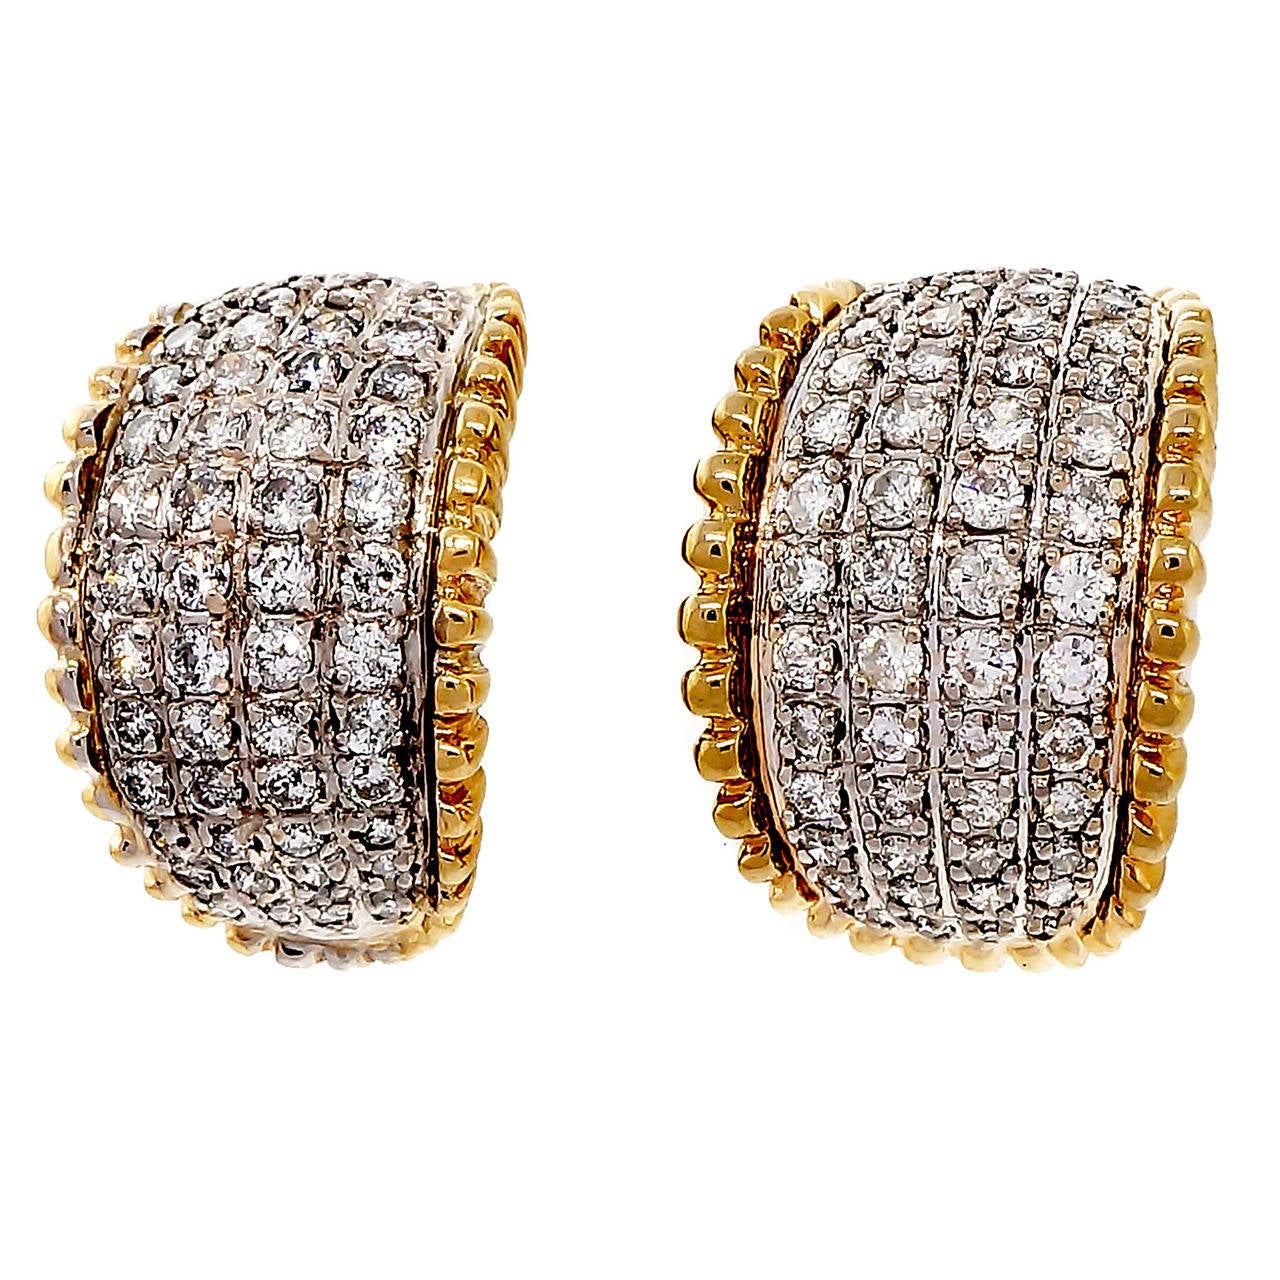 1950s Curved Diamond Gold Domed Earrings